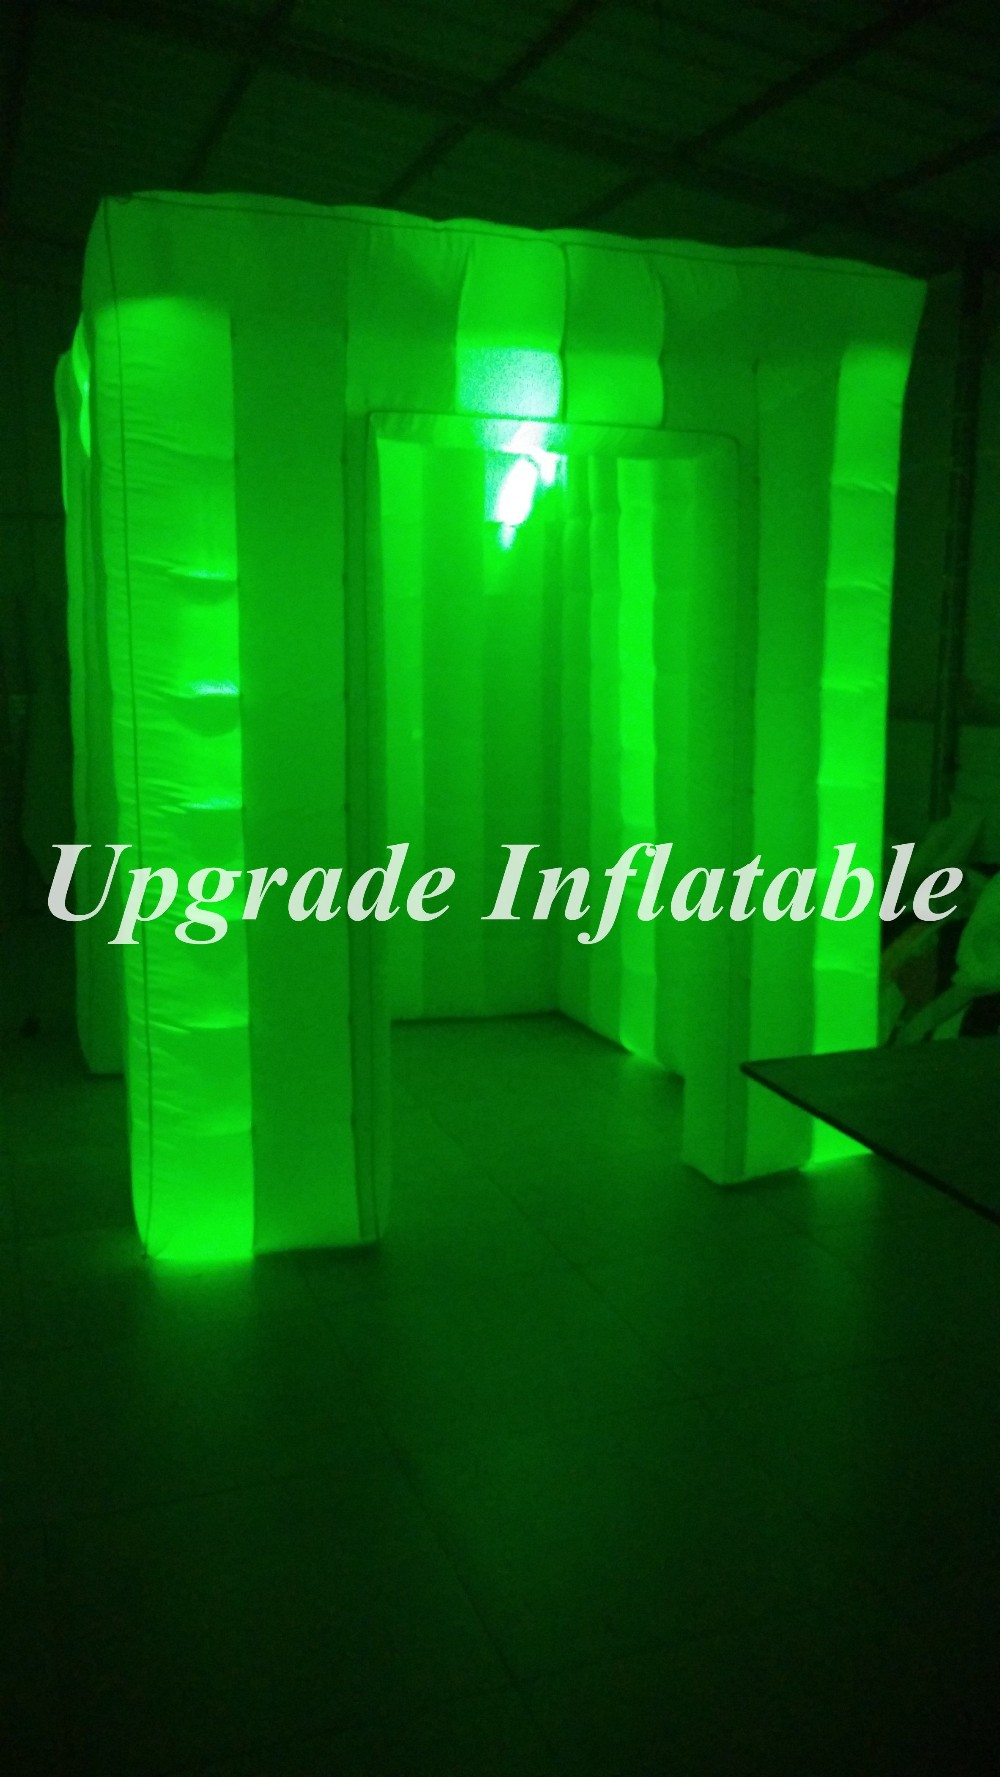 Color booth online - Coolest Cube Photo Booth Inflatable With Color Changing Background Lights China Mainland